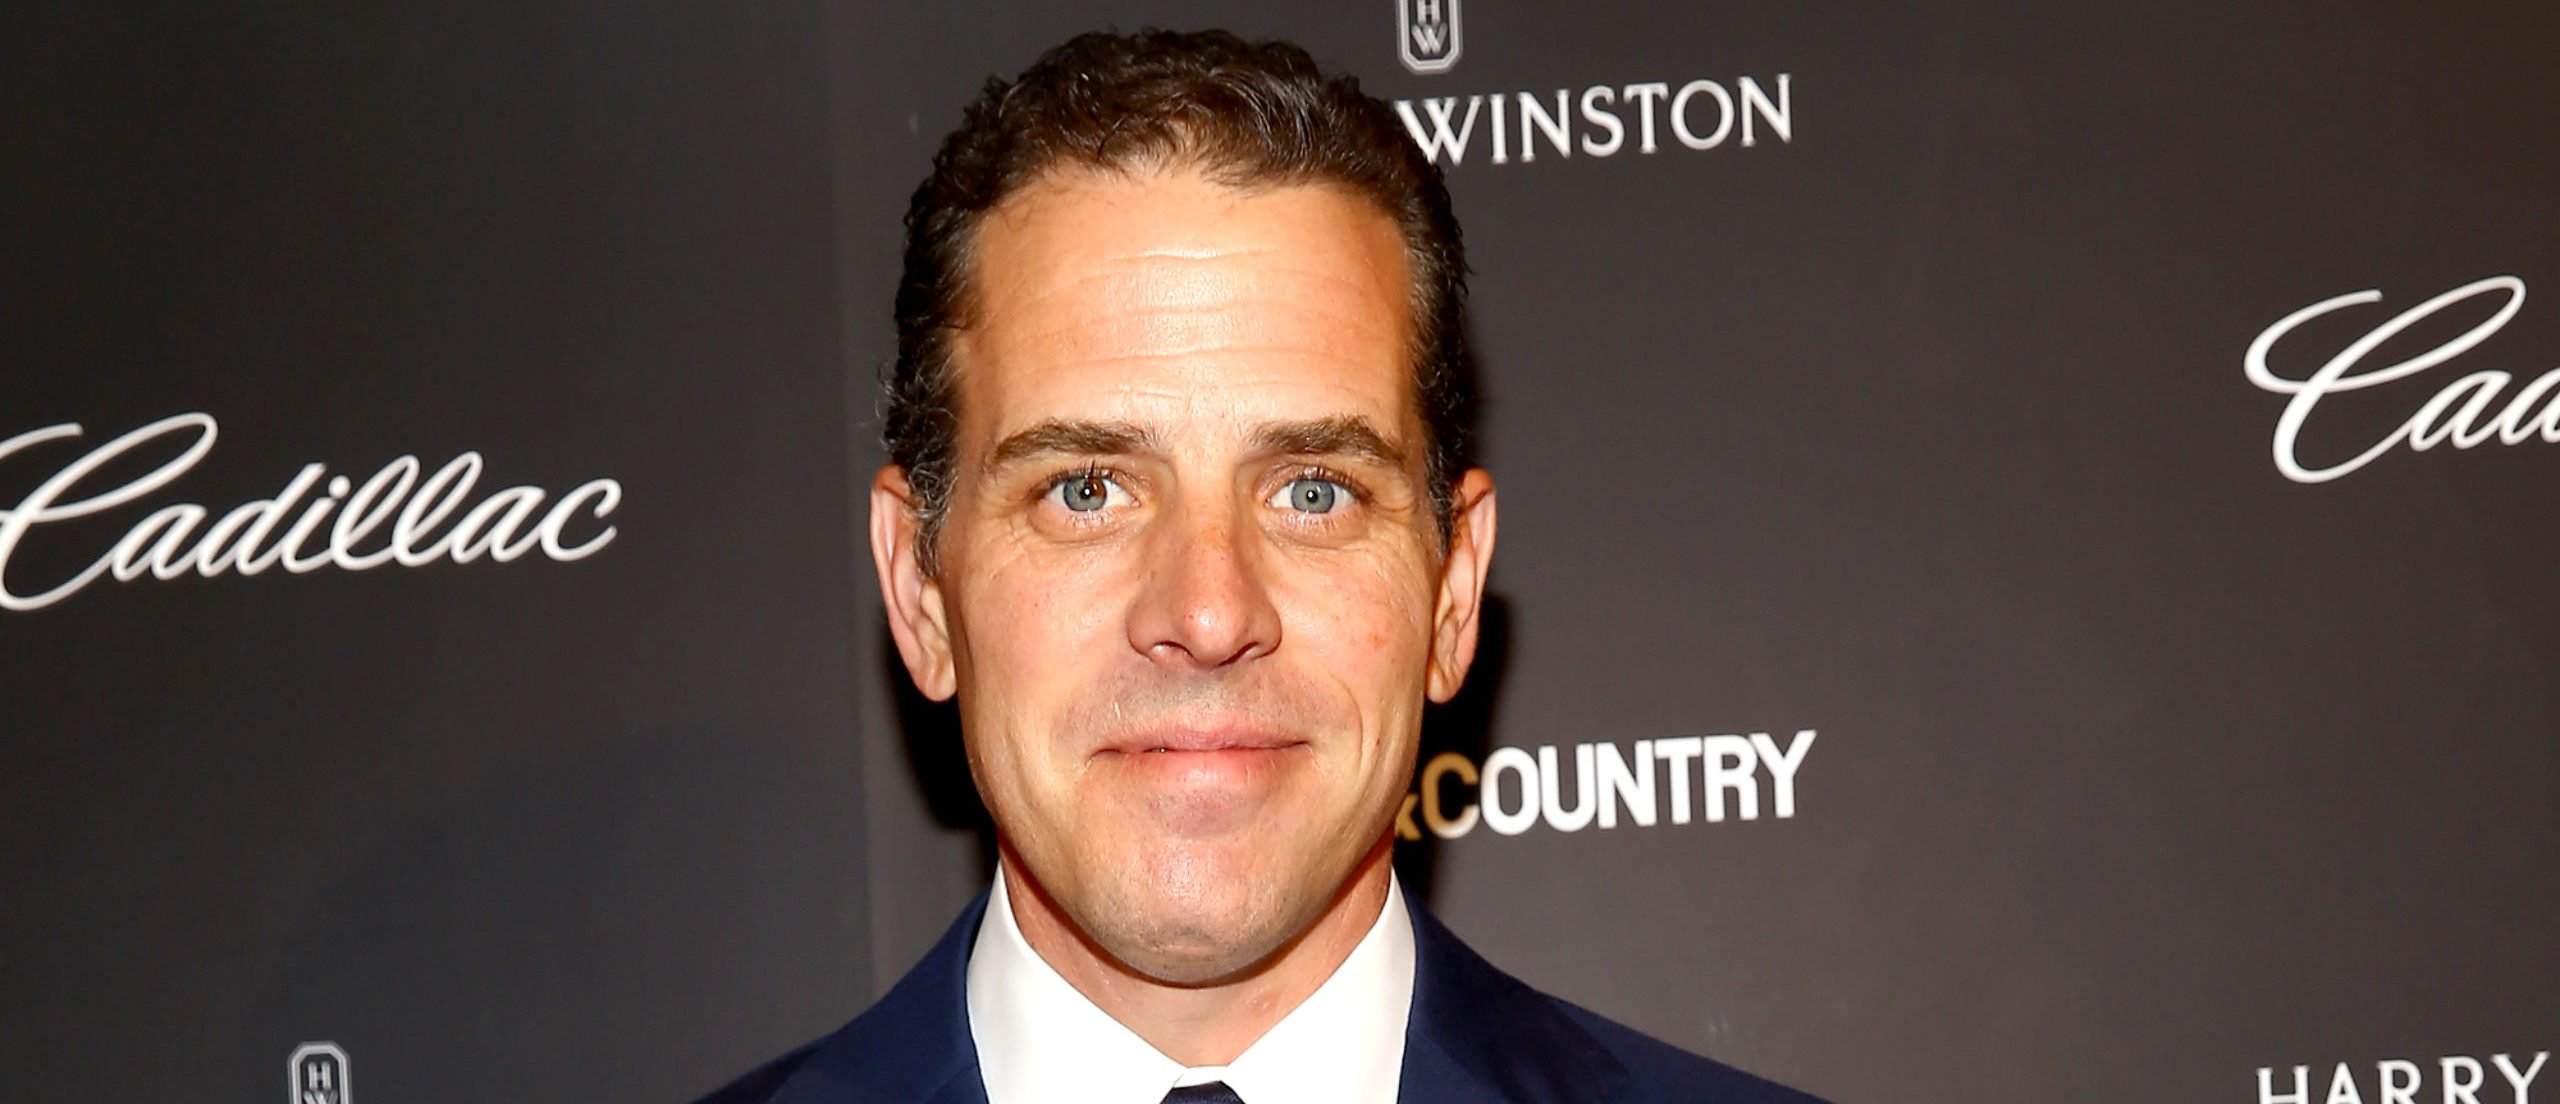 Hunter Biden attends a screening. (Astrid Stawiarz/Getty Images)